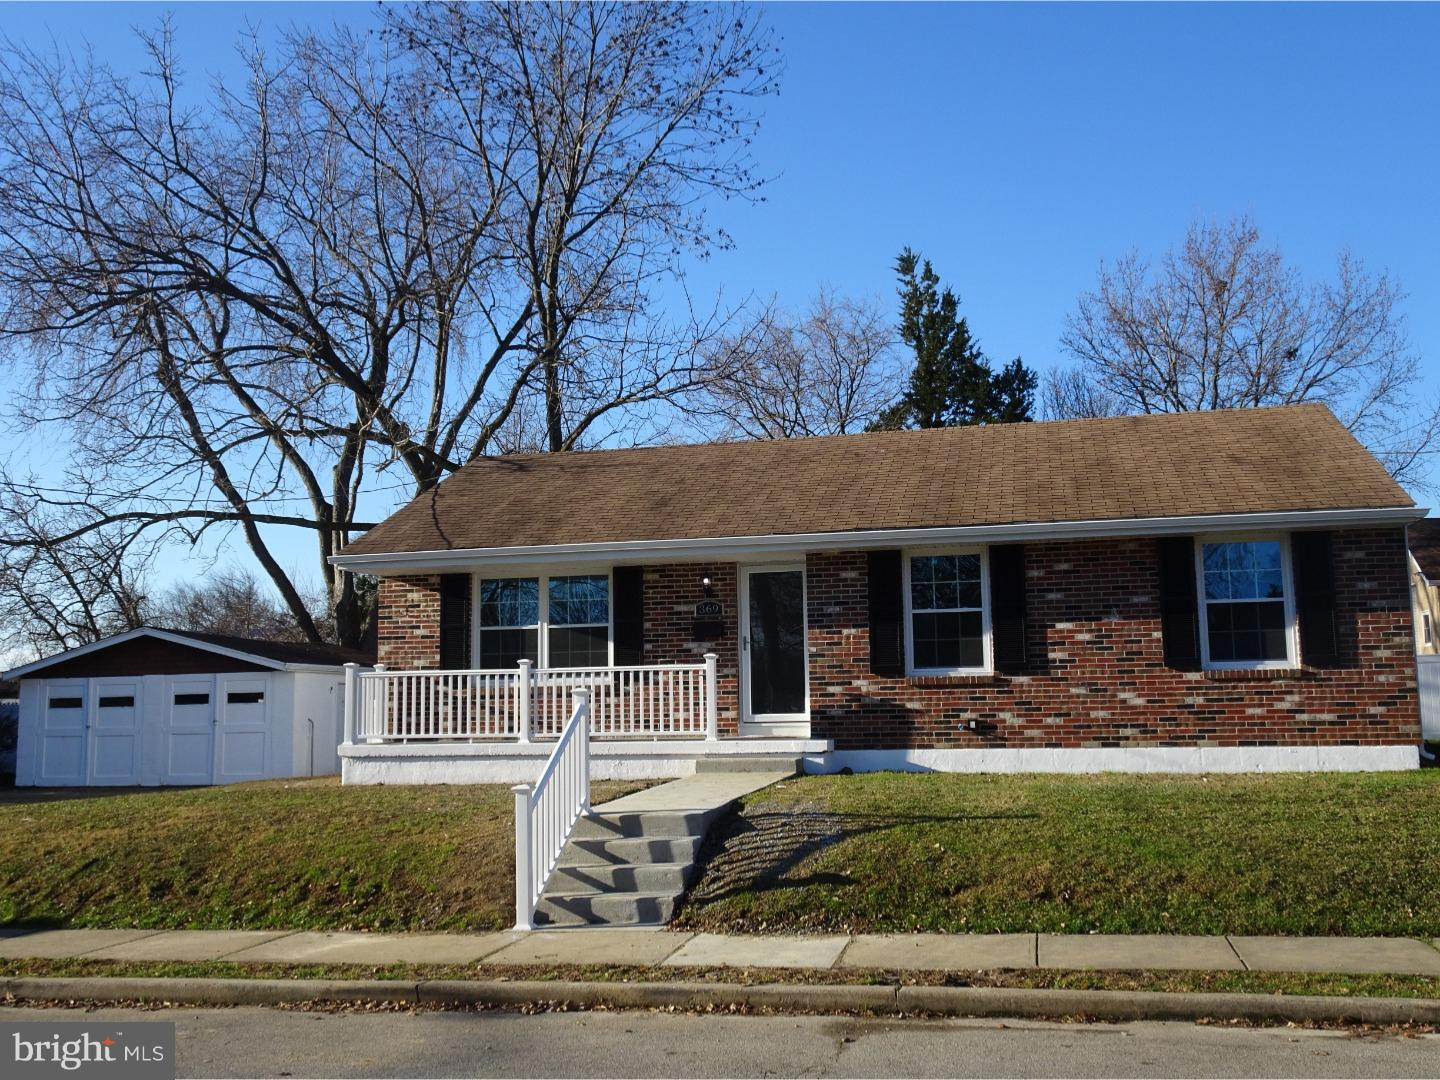 369 HIGHLAND TERRACE, HOLMES, PA 19043